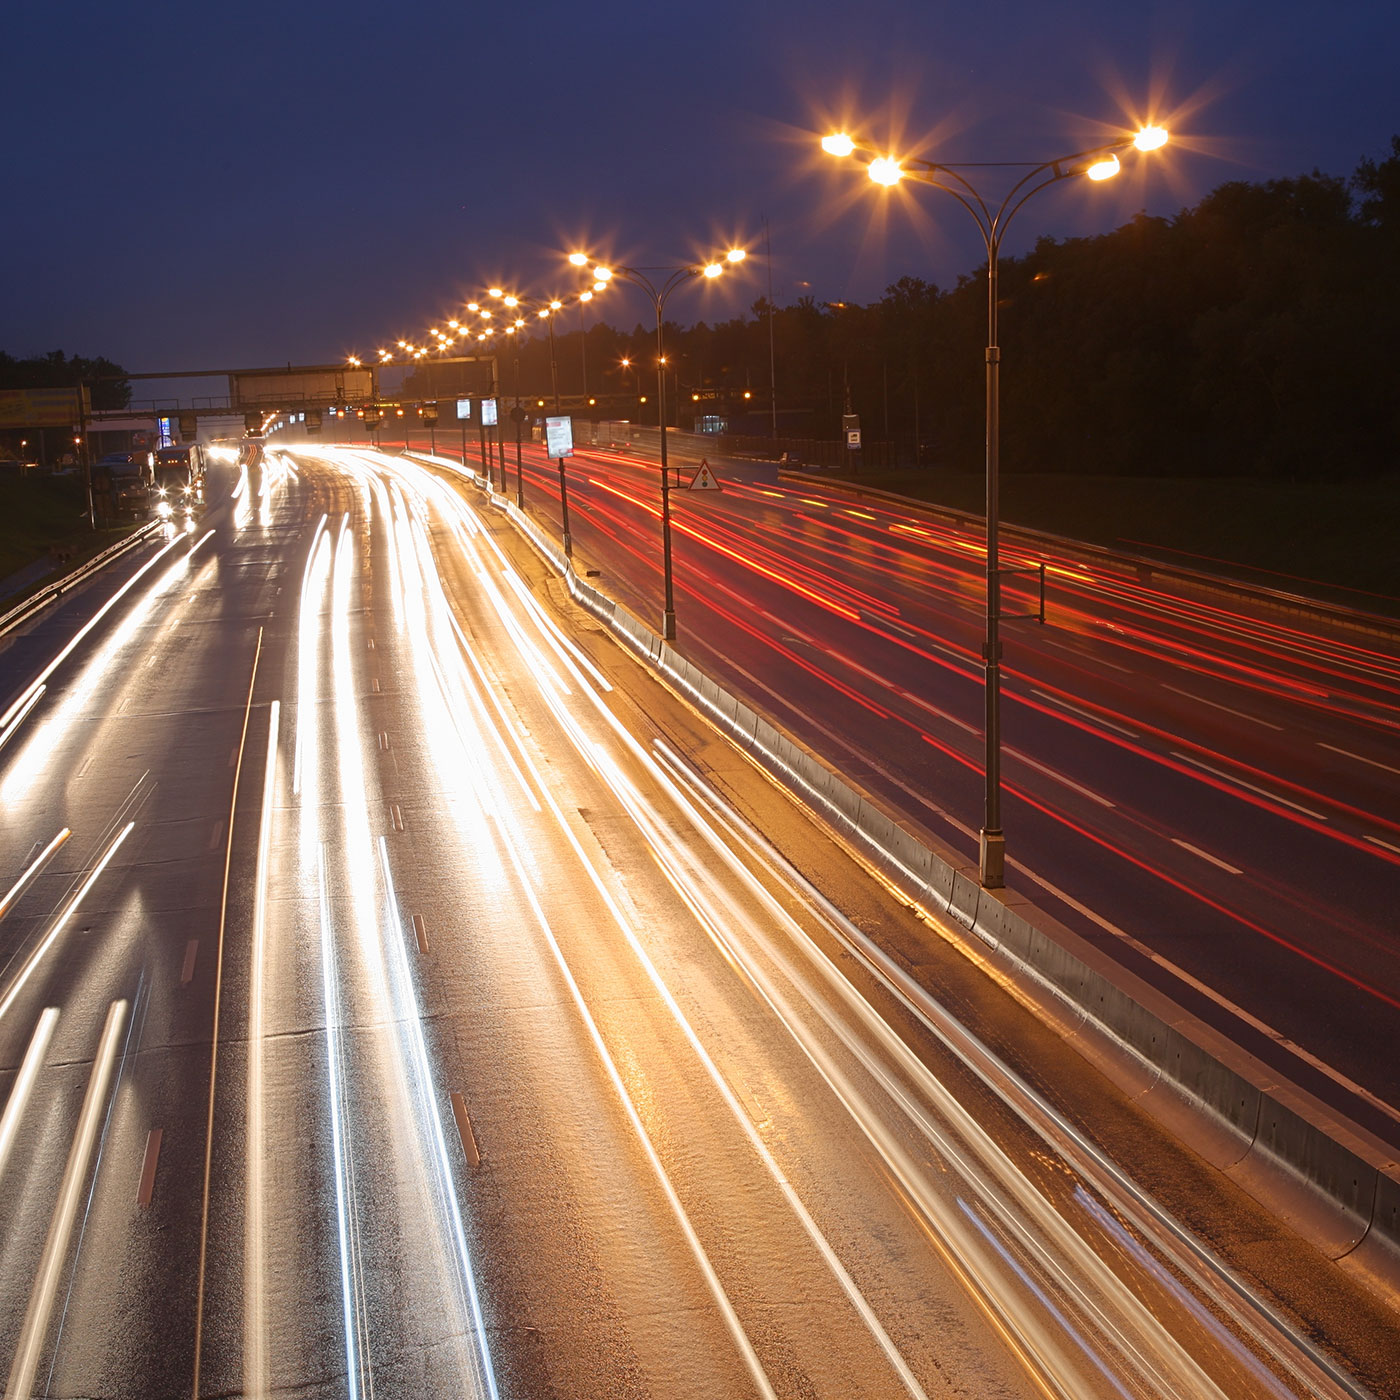 A busy motorway at night. MNS Attorneys can assist in reviewing, interpreting and drafting primary and secondary legislation and legal services for the transport sector.